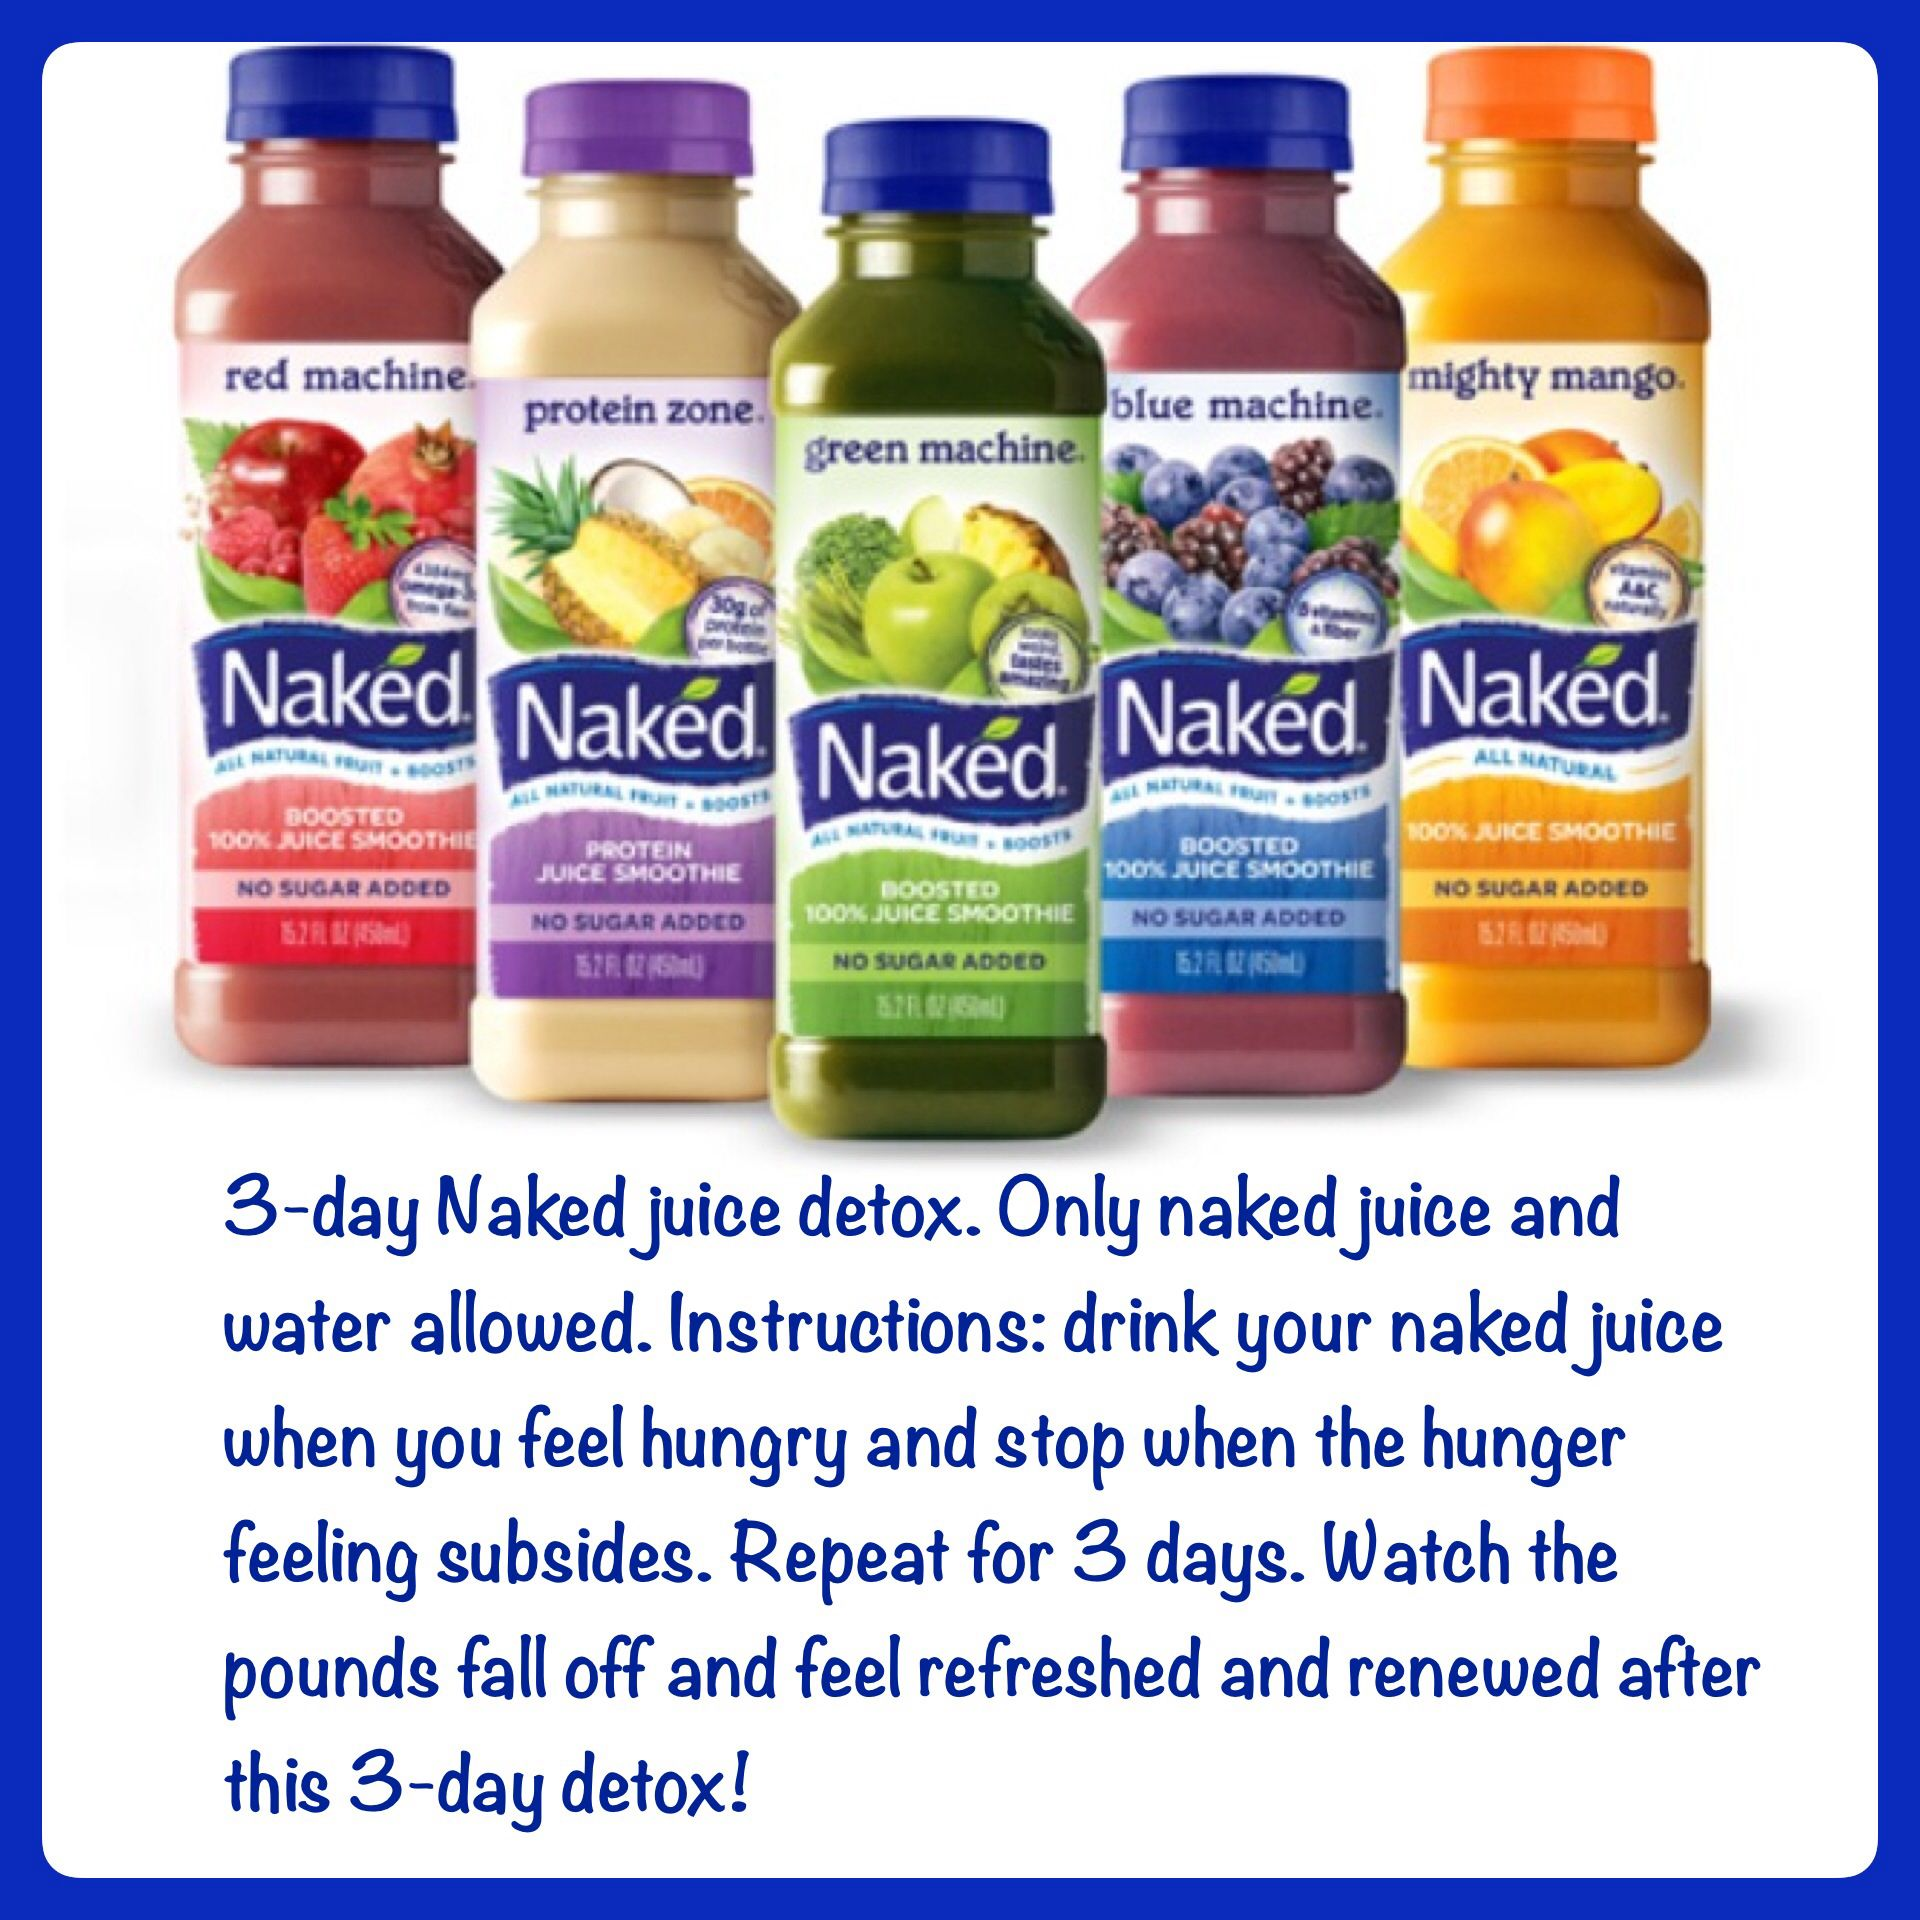 3-day naked juice detox. #fitness #weight loss #shred pounds ...